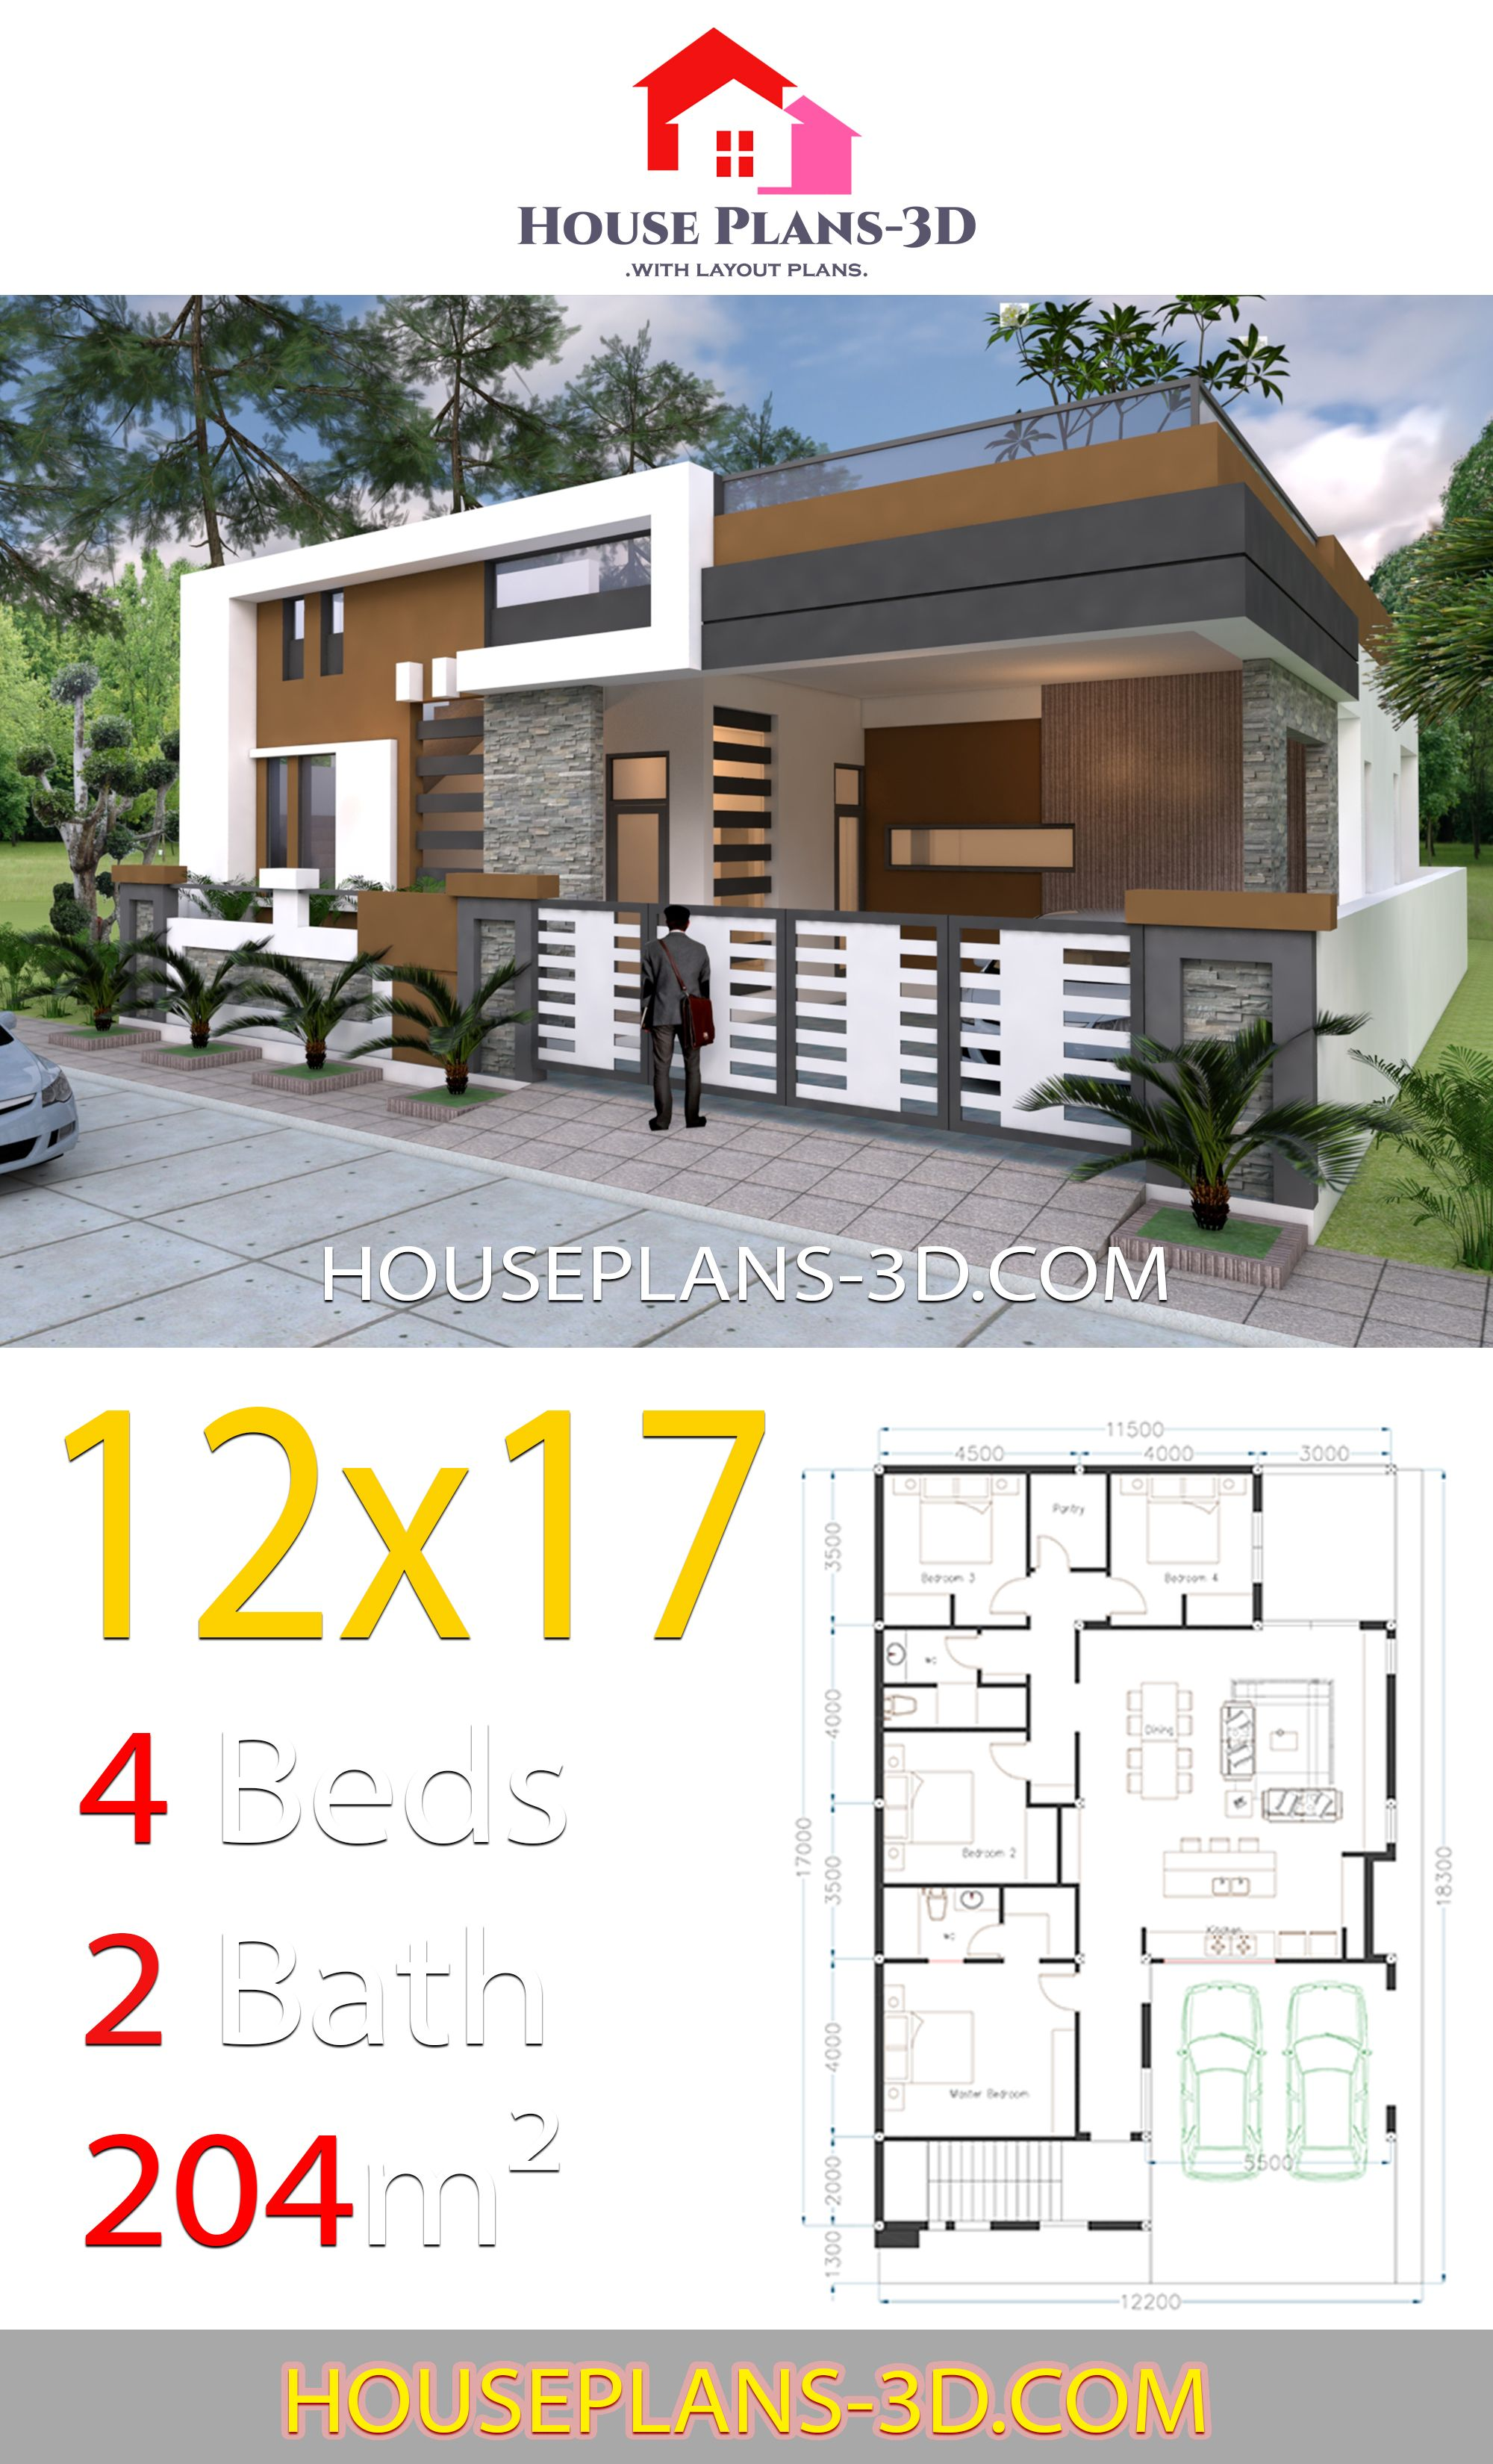 House Design 12x17 With 4 Bedrooms Terrace Roof House Plans 3d Single Floor House Design House Plans House Plan Gallery